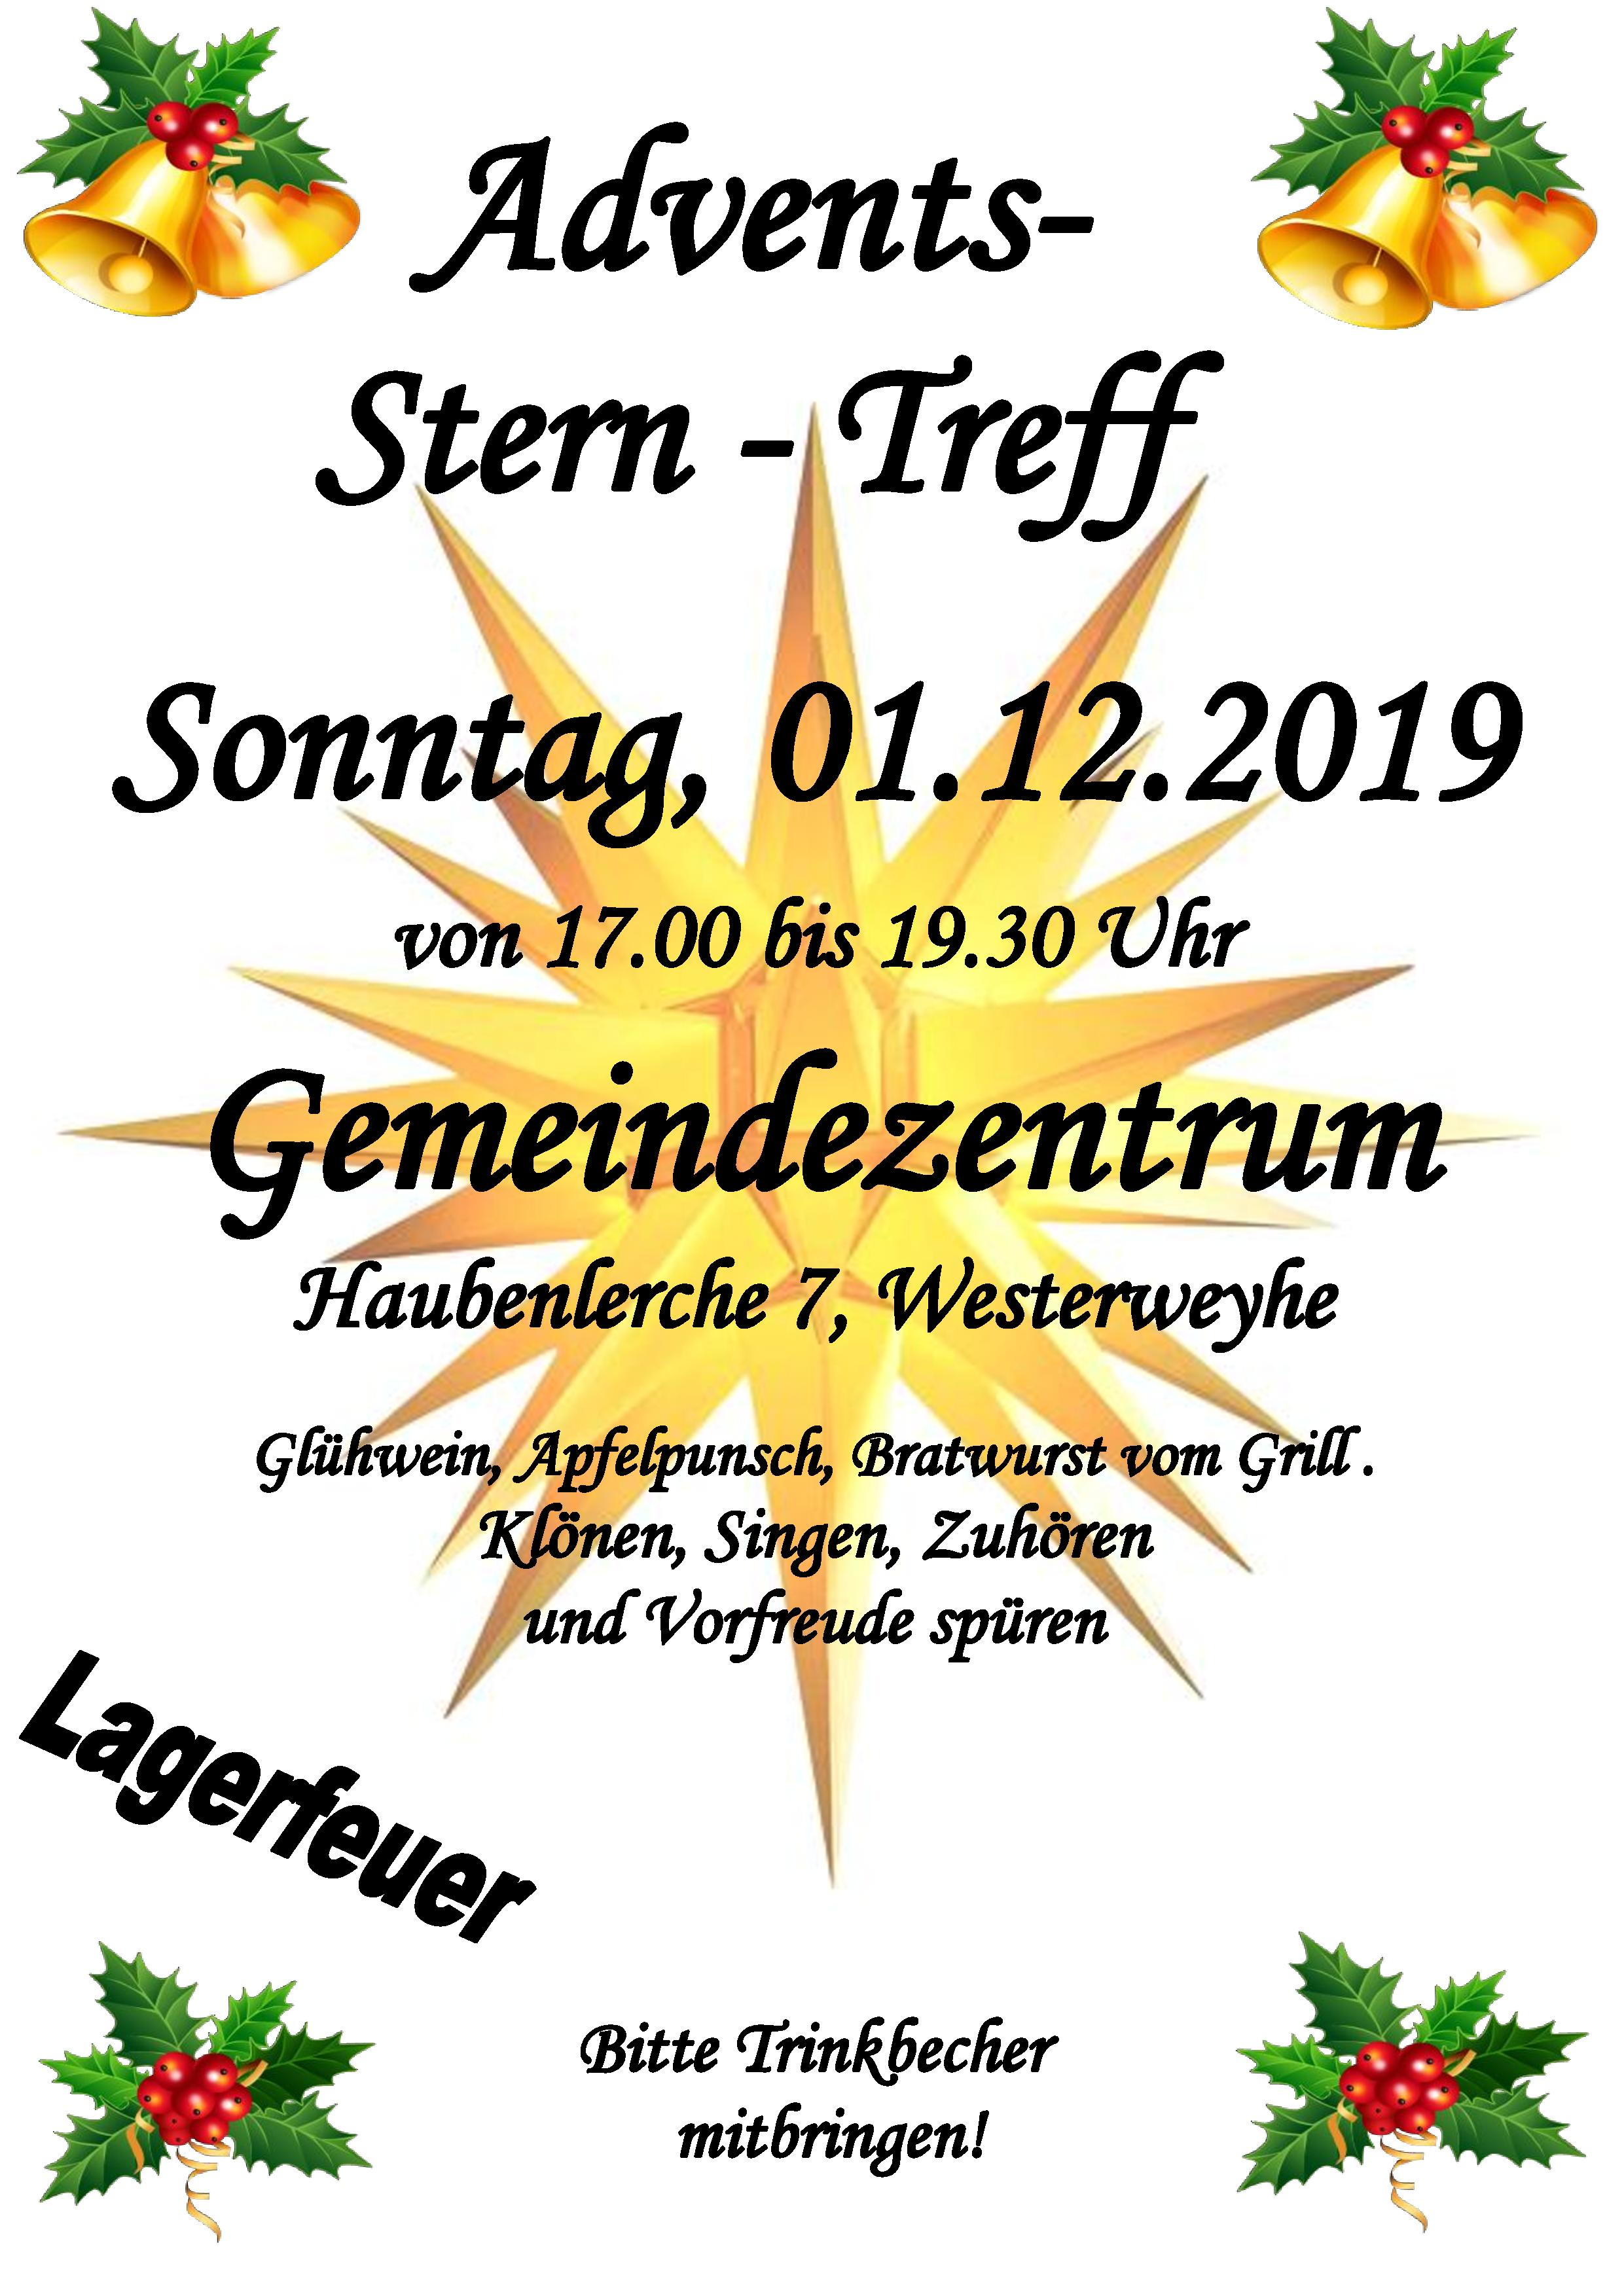 advents-stern-treff_01.12.2019-page-001.jpg